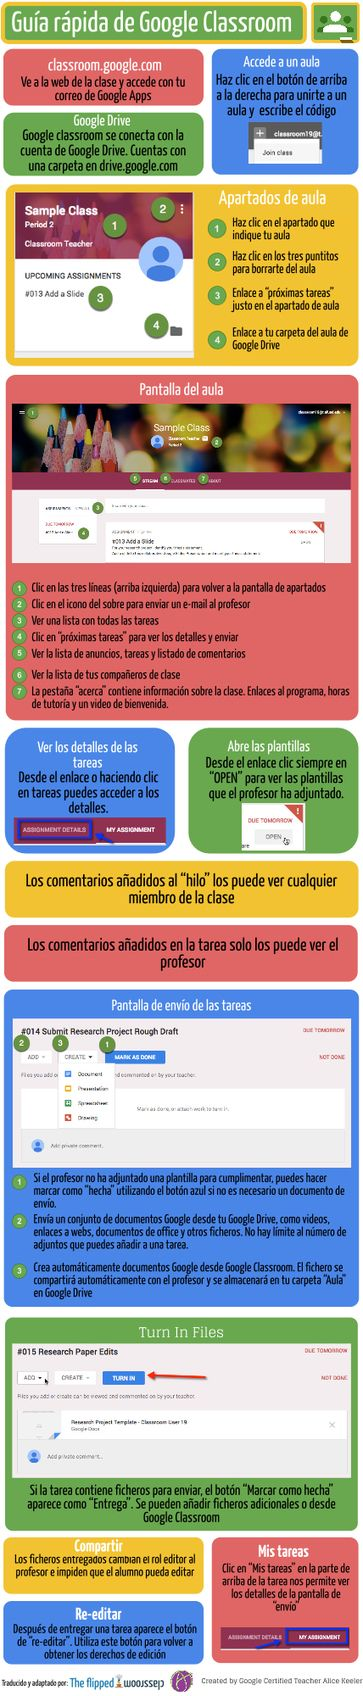 Guía rápida de Google Classroom #infografia #infographic #education | TICs para los de LETRAS | Scoop.it